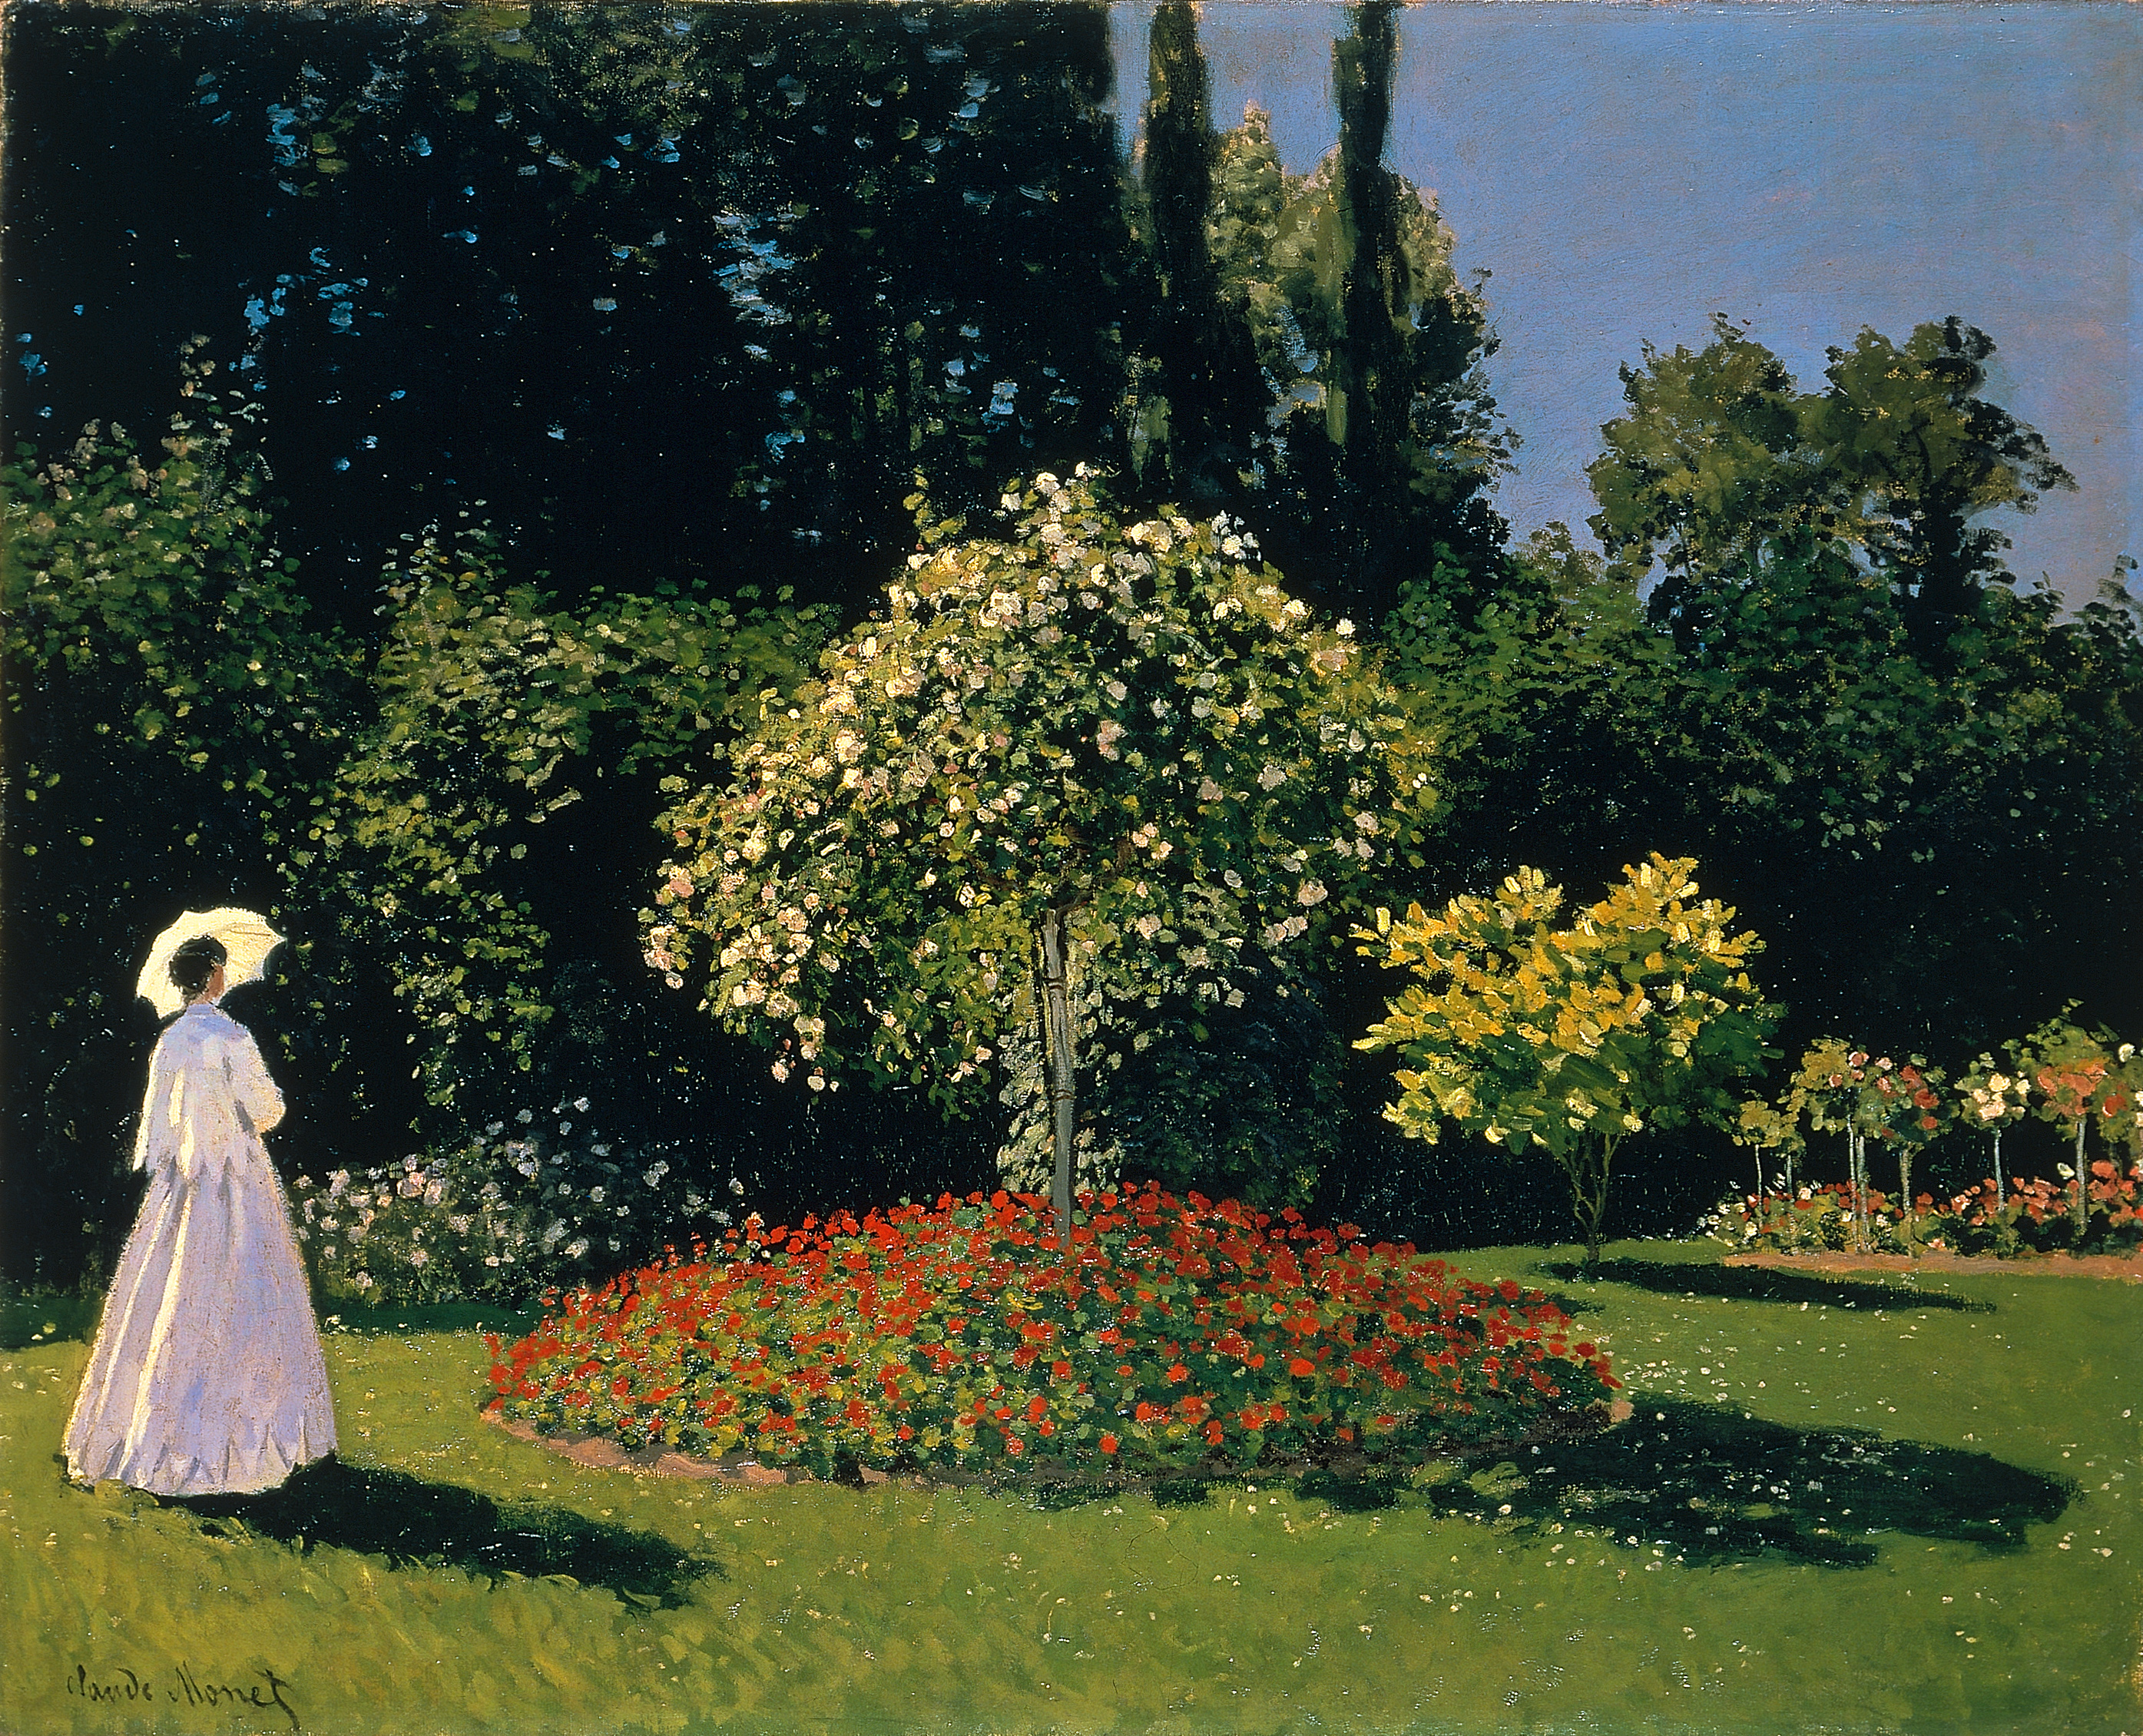 http://upload.wikimedia.org/wikipedia/commons/0/0e/Claude_Monet_022.jpg